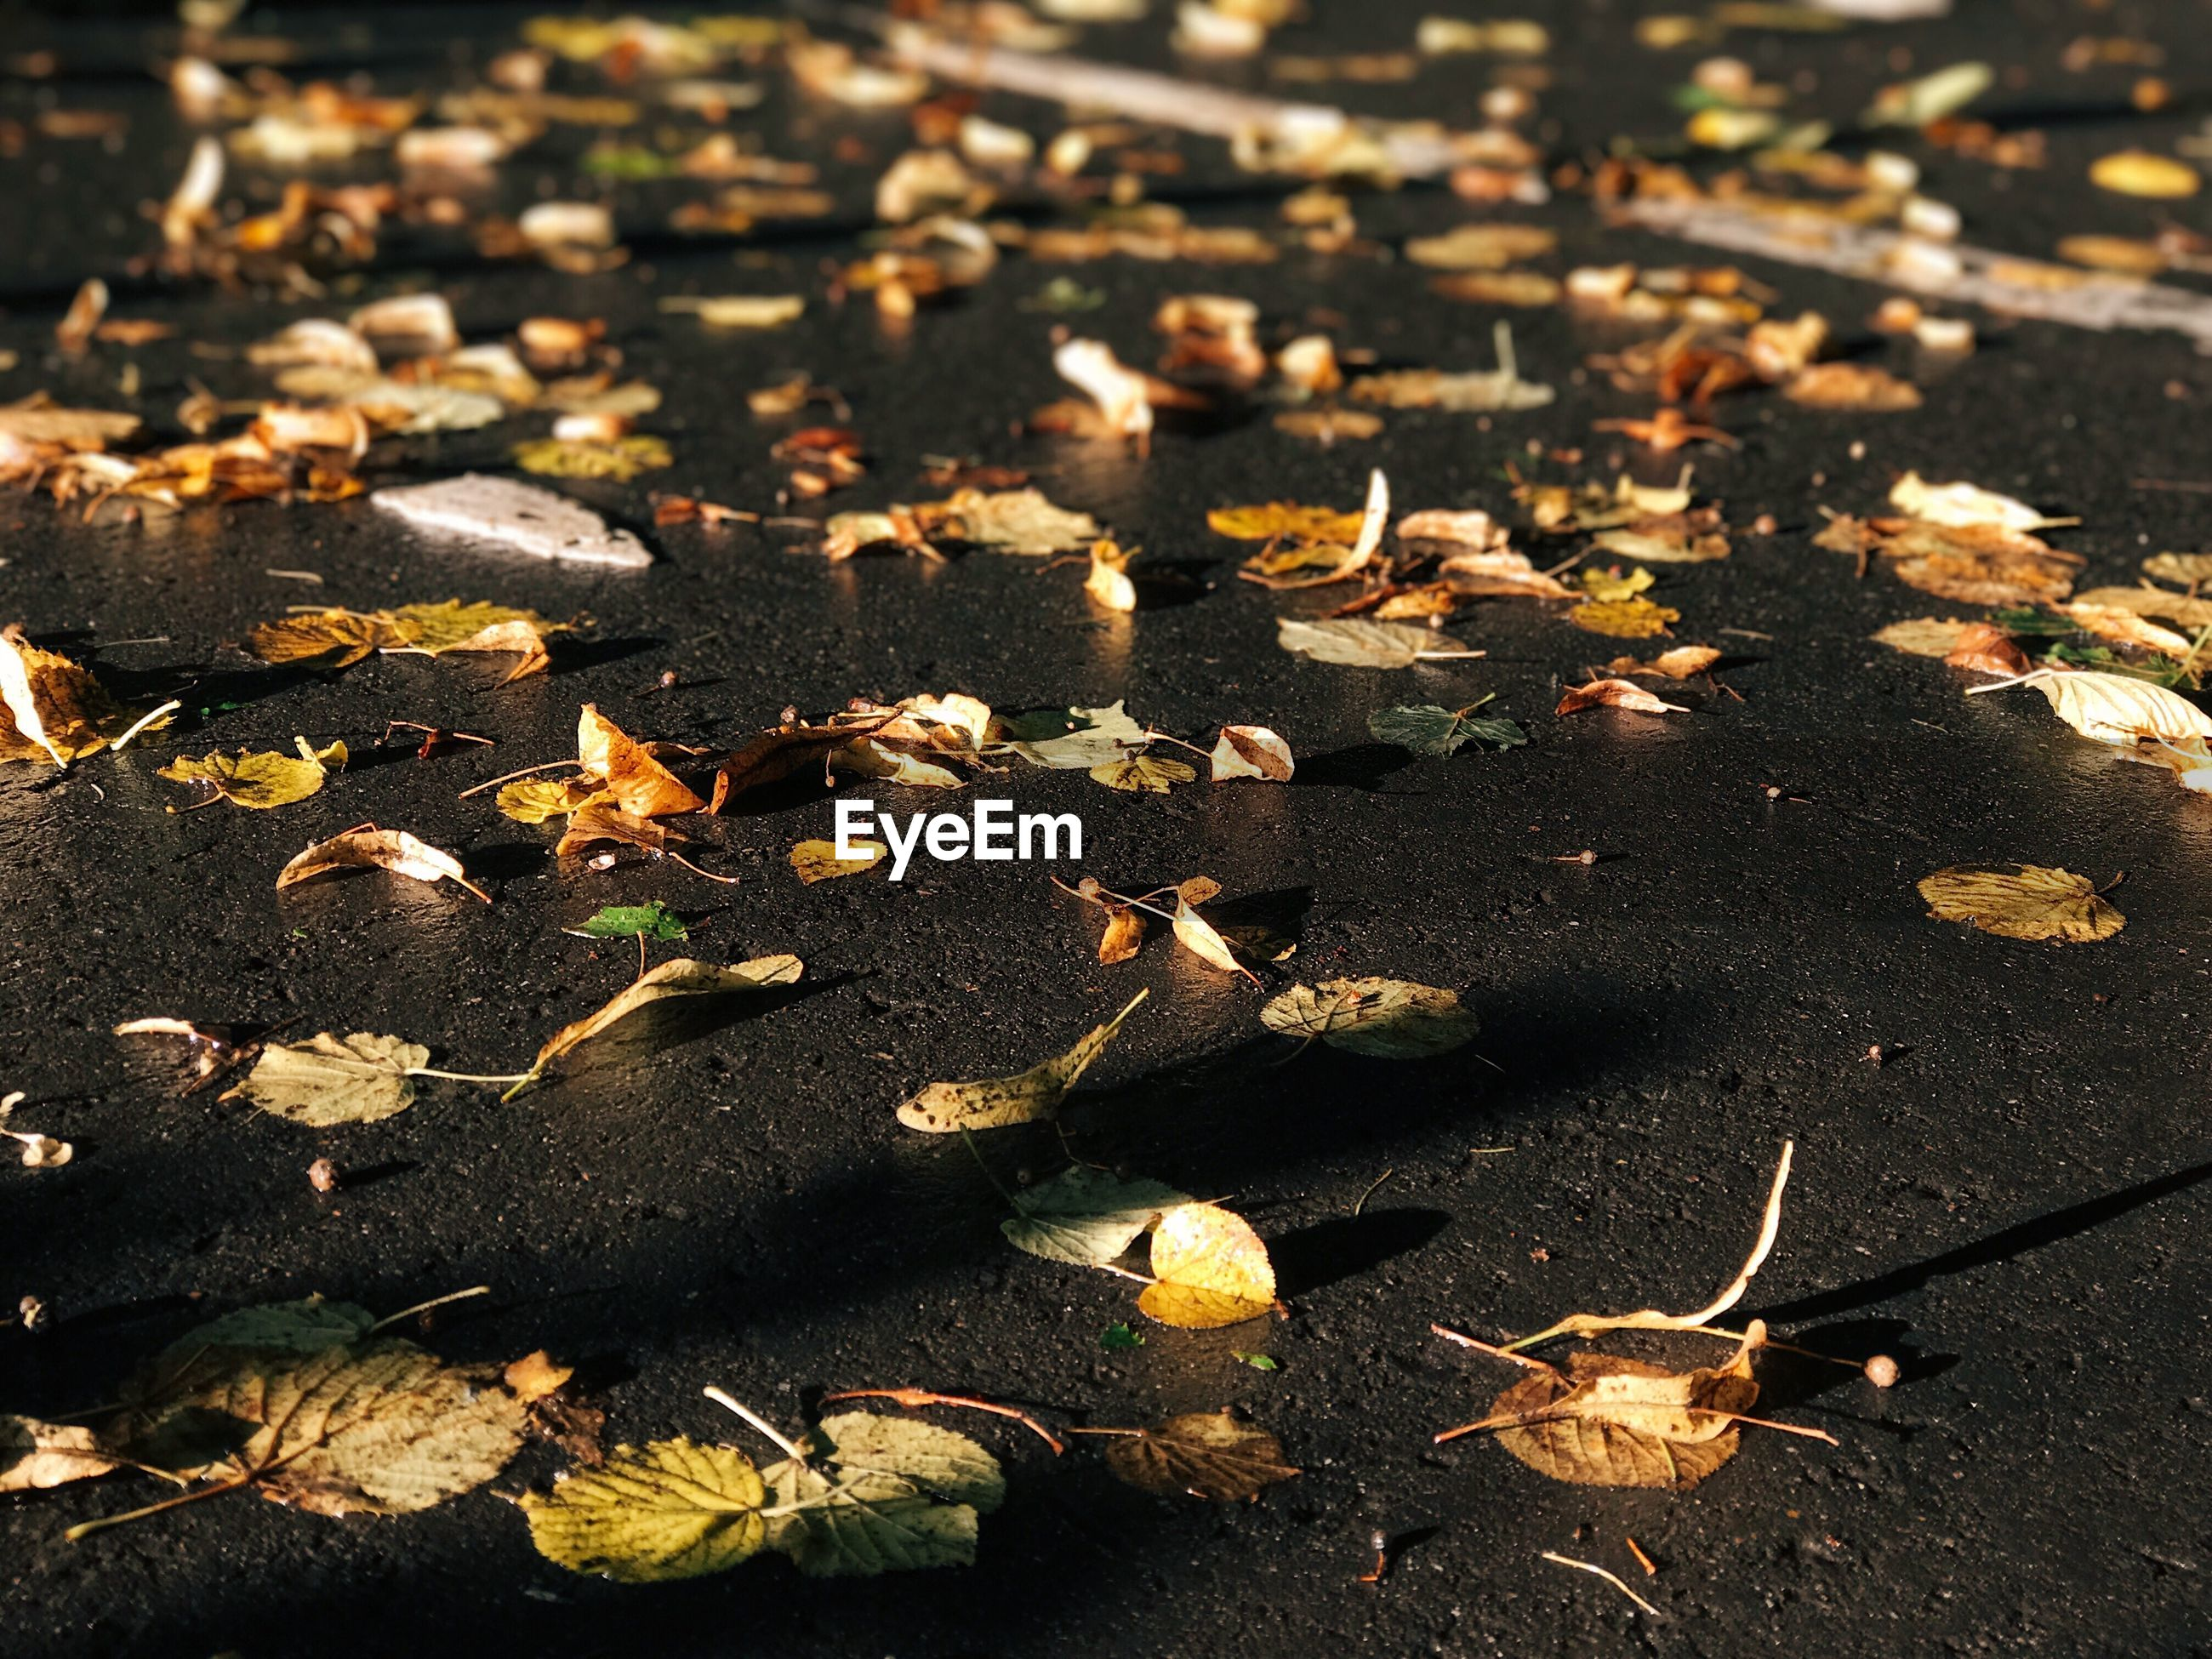 leaf, autumn, change, dry, leaves, nature, fallen, outdoors, no people, day, sunlight, maple leaf, maple, beauty in nature, tranquility, close-up, fragility